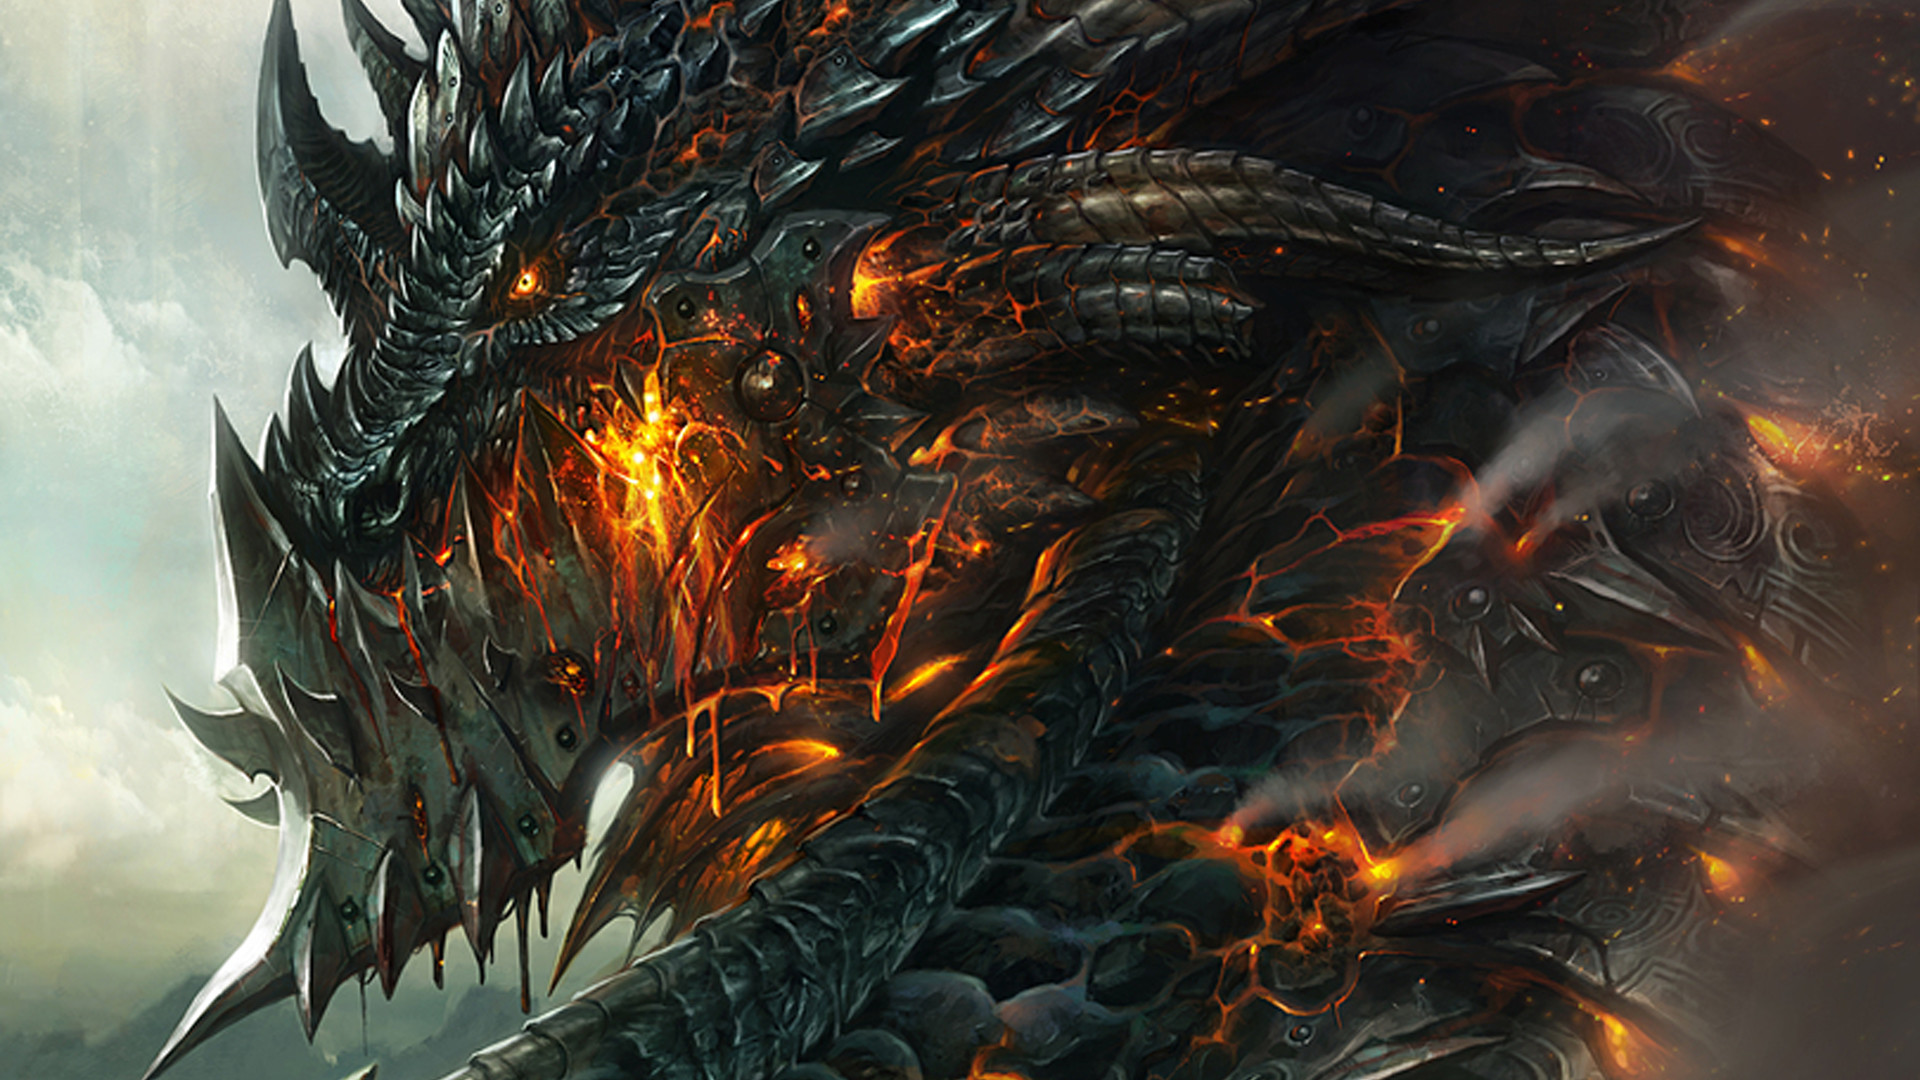 1920x1080 Dragon Wallpapers Images Desktop.